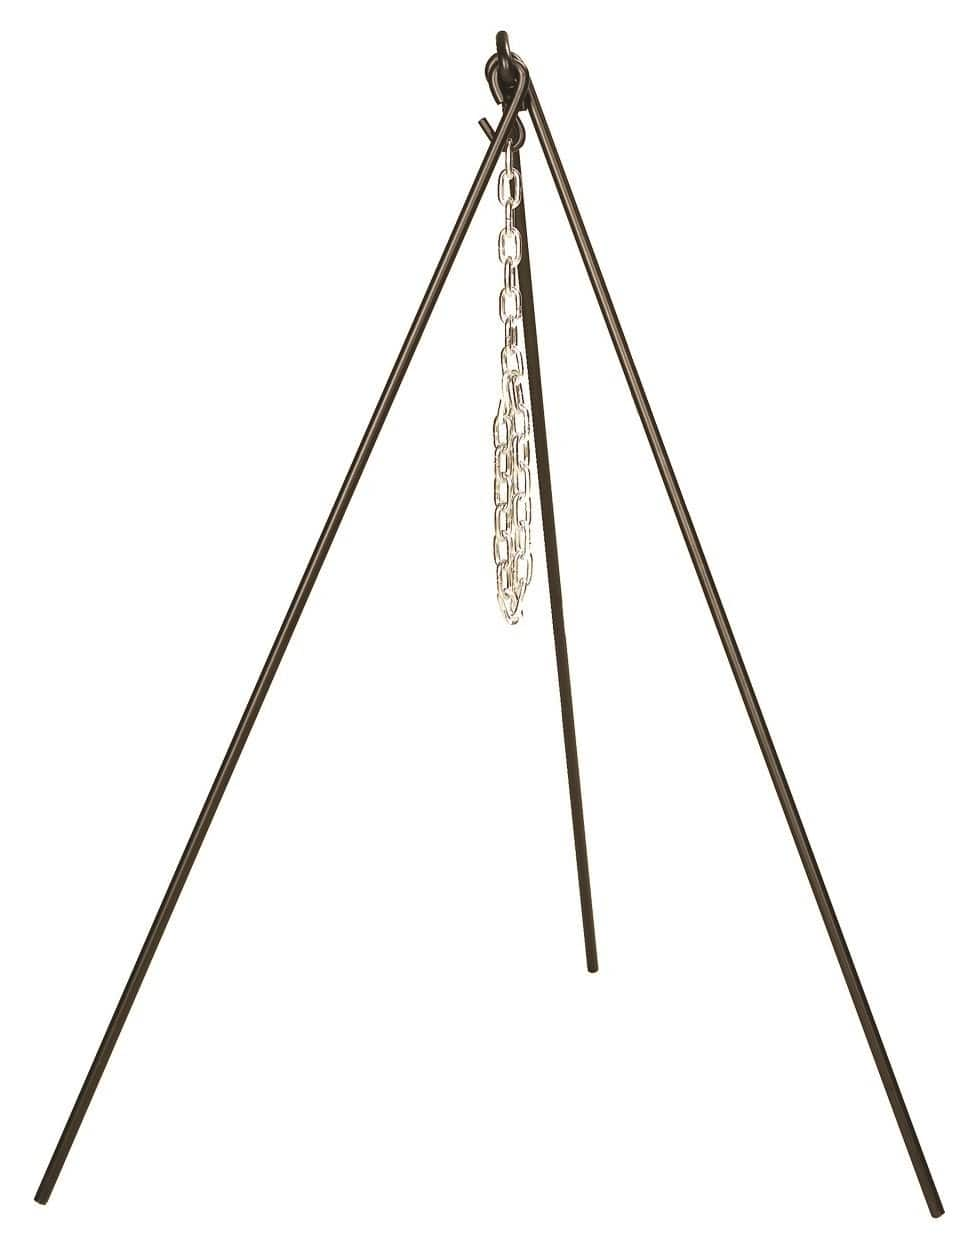 Lodge 3TP2 Camp Dutch Oven Tripod, 43.5-Inch $23.63 FREE Shipping w/ prime or on orders over $25. @amazon